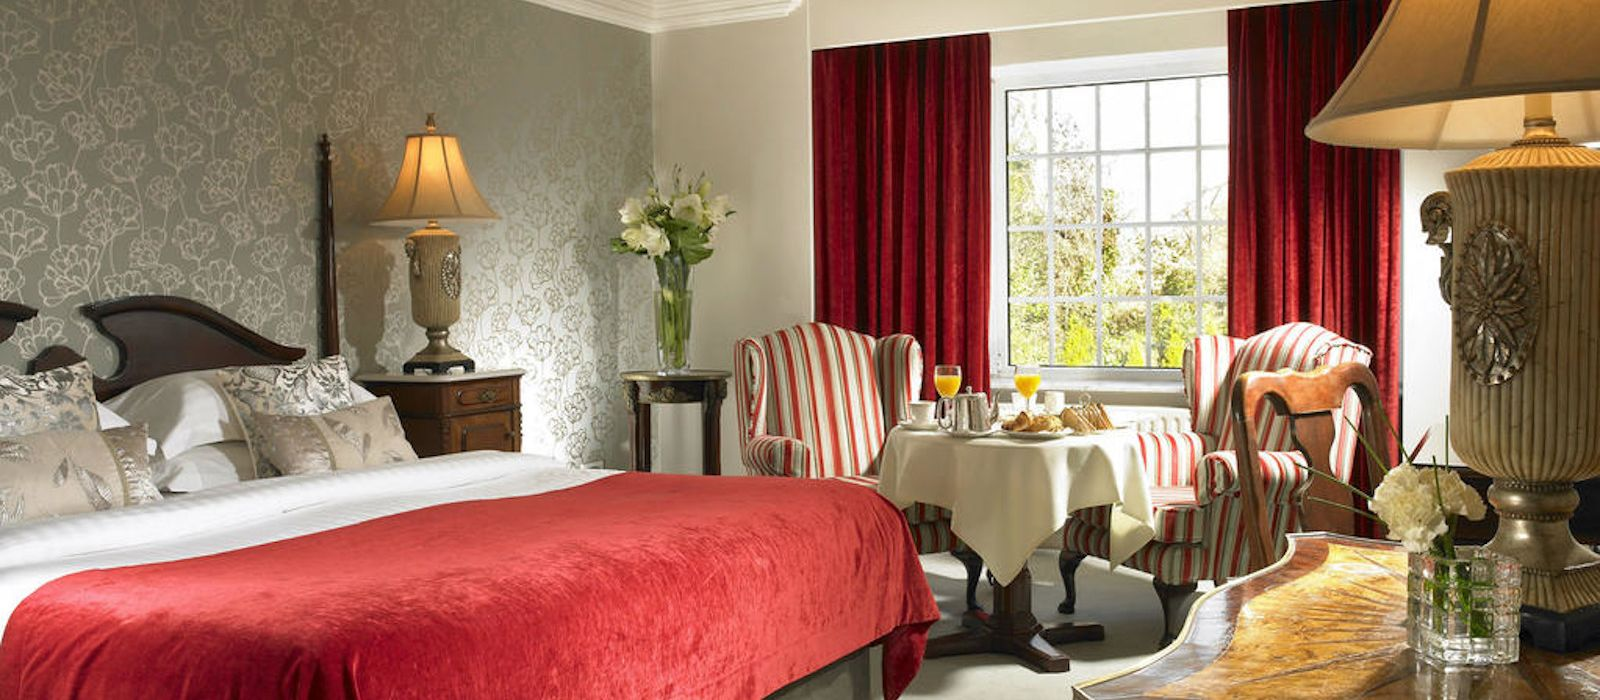 Hotel Randles  Killarney UK & Ireland